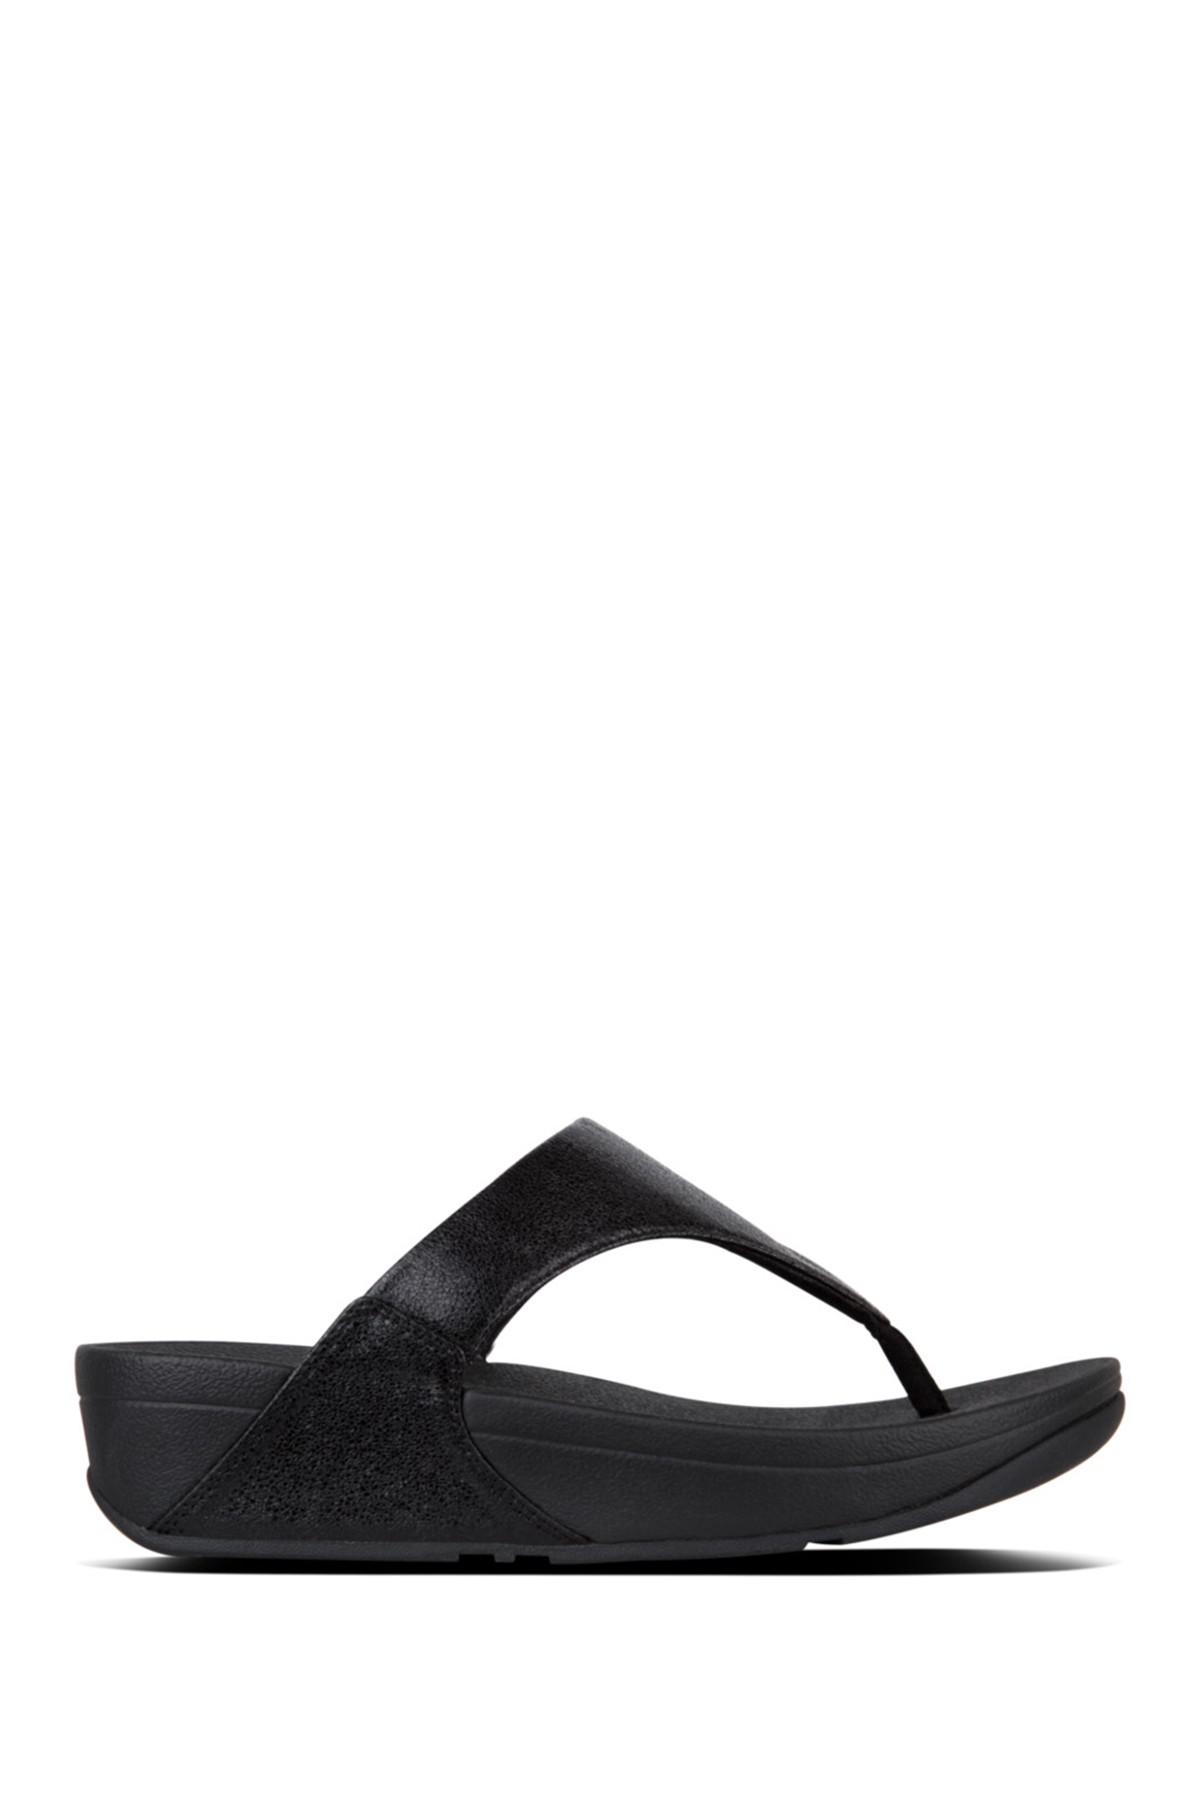 7268dc27a0a7 Lyst - Fitflop Lulu Faux Leather Thong Wedge Sandal in Black - Save 22%